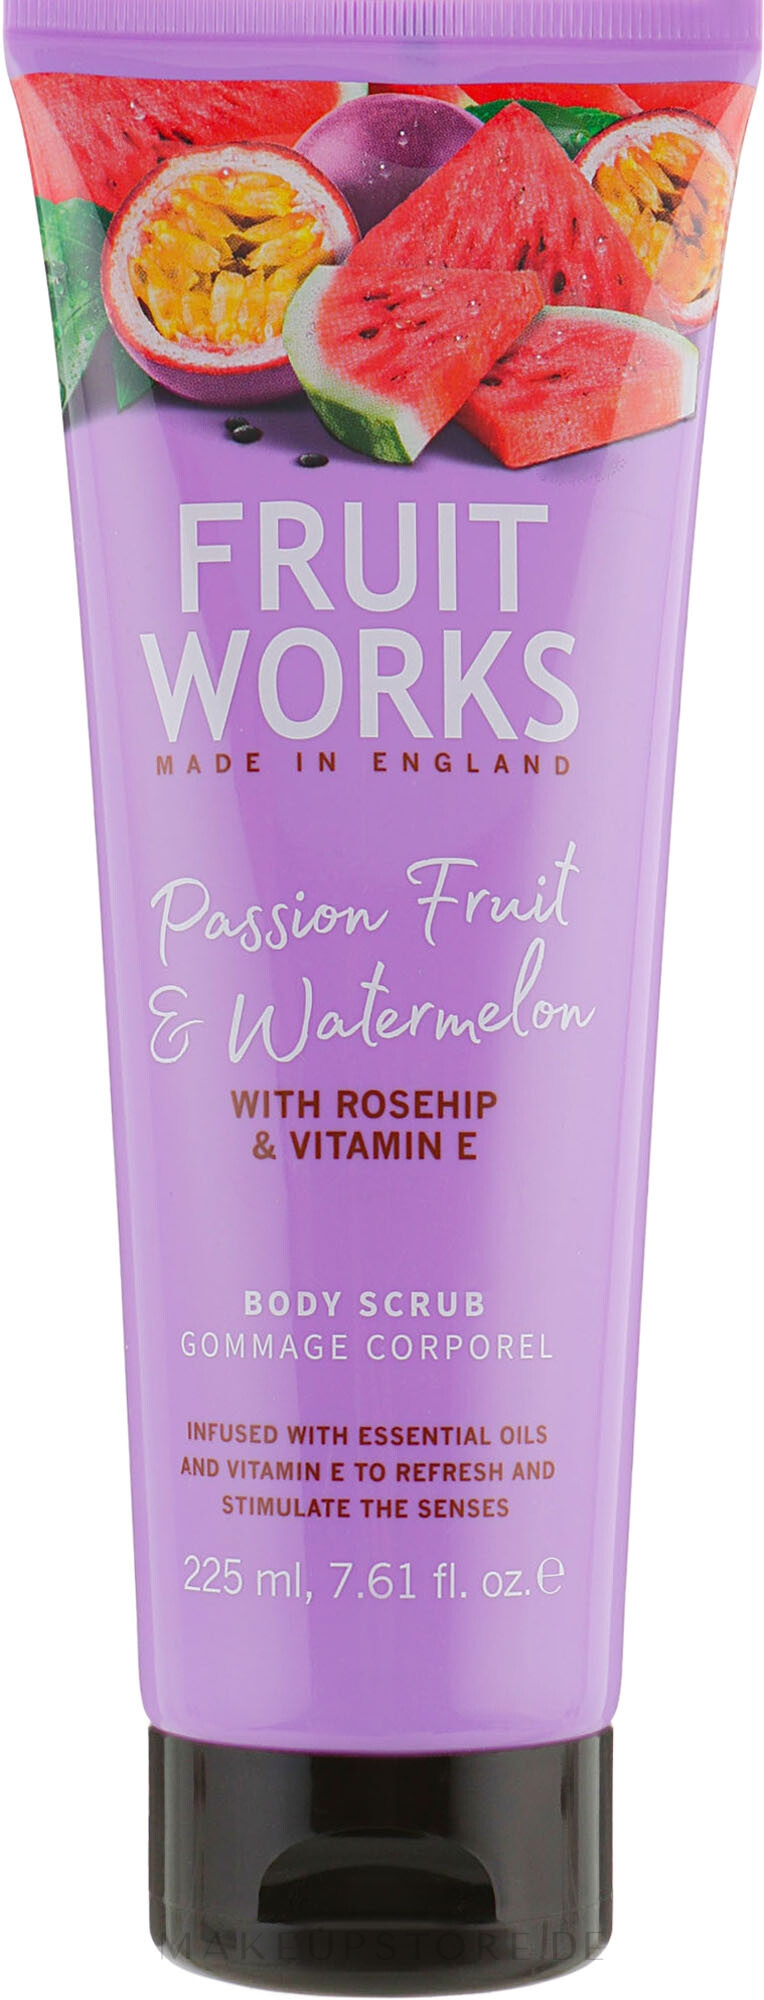 Körperpeeling mit Passionsfrucht und Wassermelone - Grace Cole Fruit Works Body Scrub Passion Fruit & Watermelon — Bild 225 ml